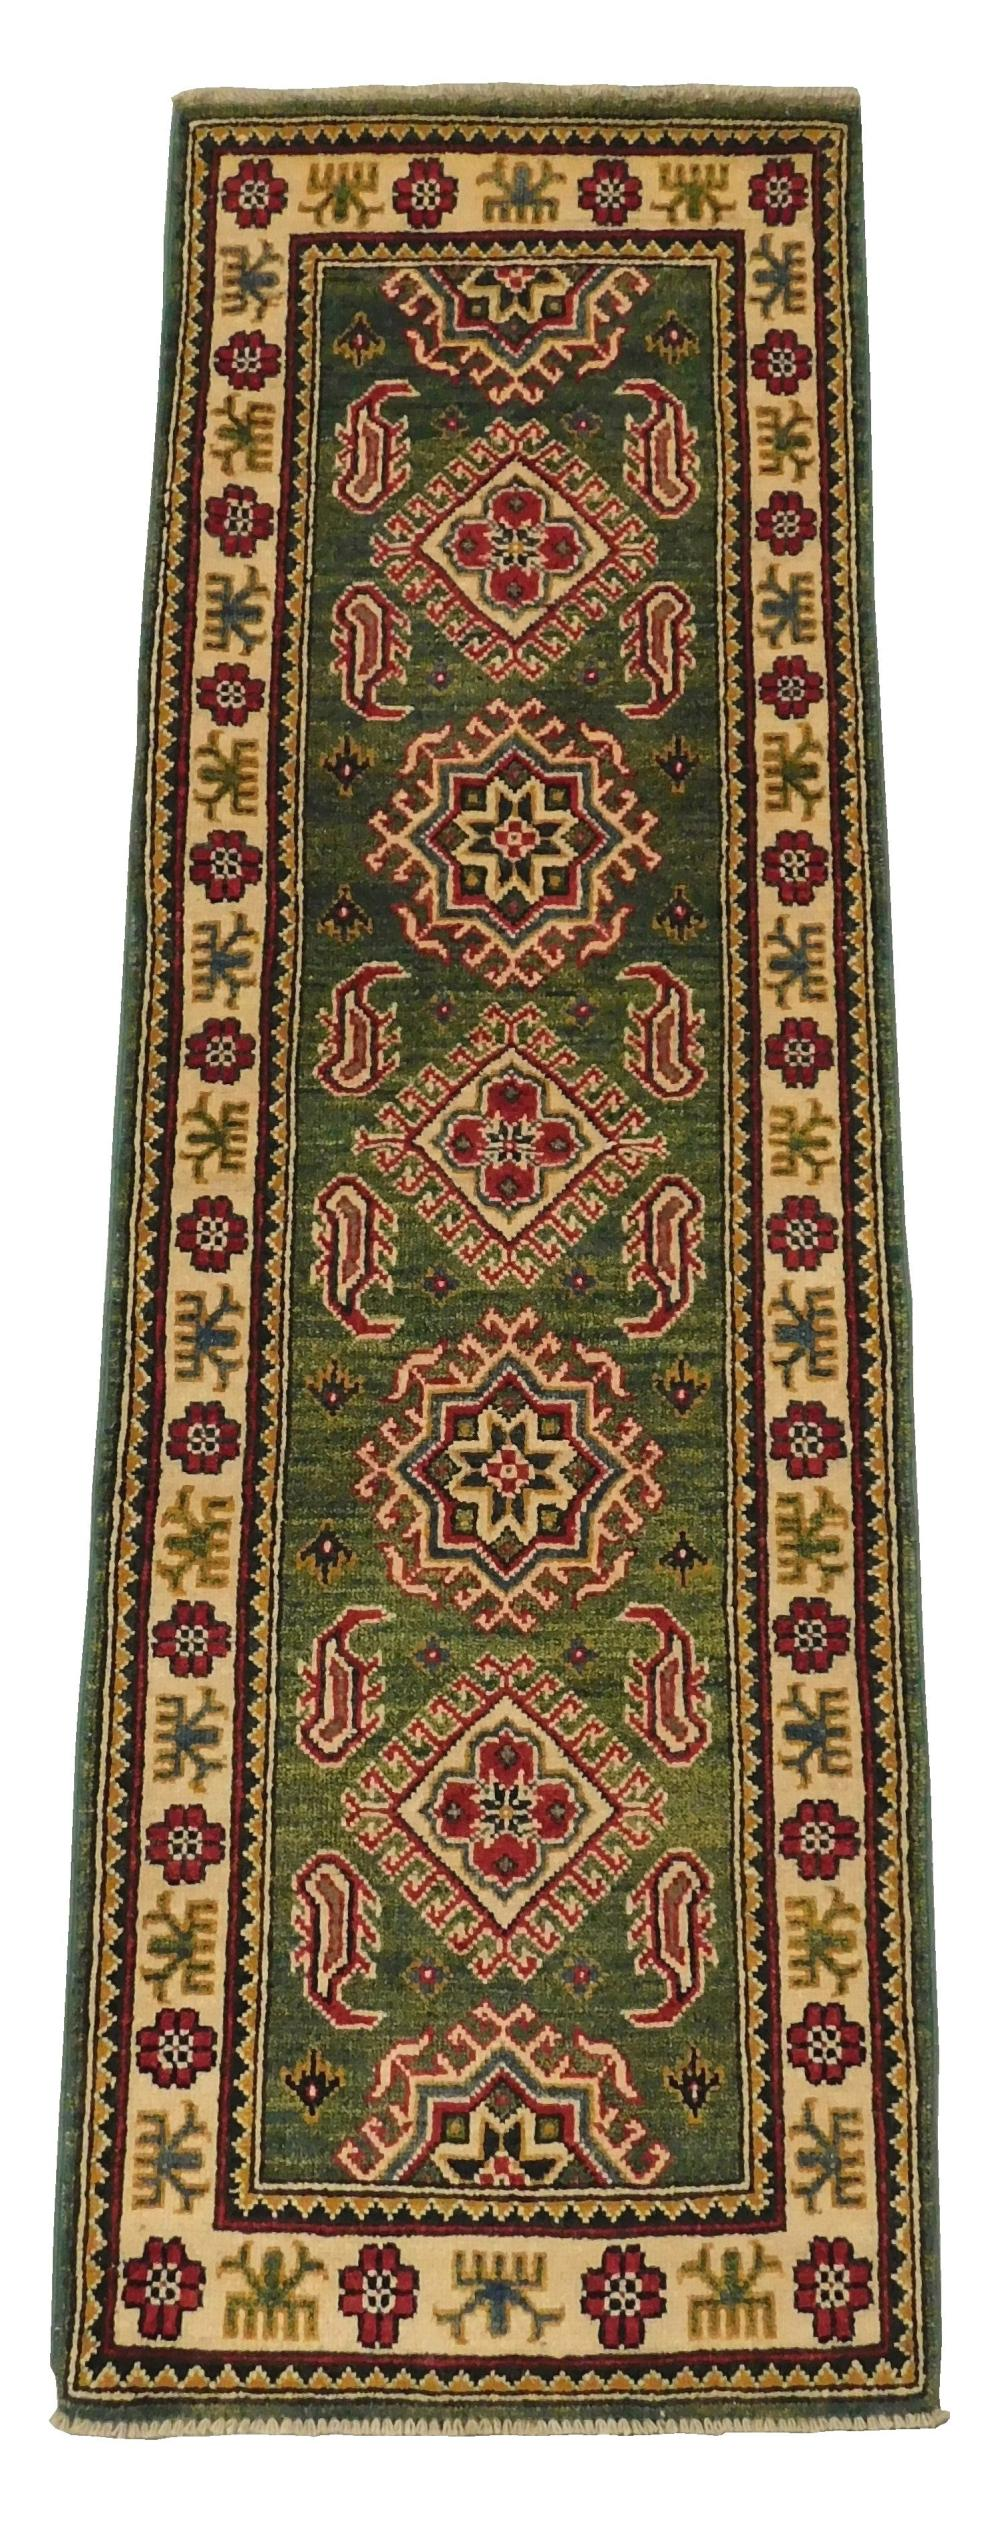 "RUG: Uzbek Kazak, 2' x 6'2"", hand-knotted, 100% wool on cotton, green ground with red, white and blue geometric border, light wear c."